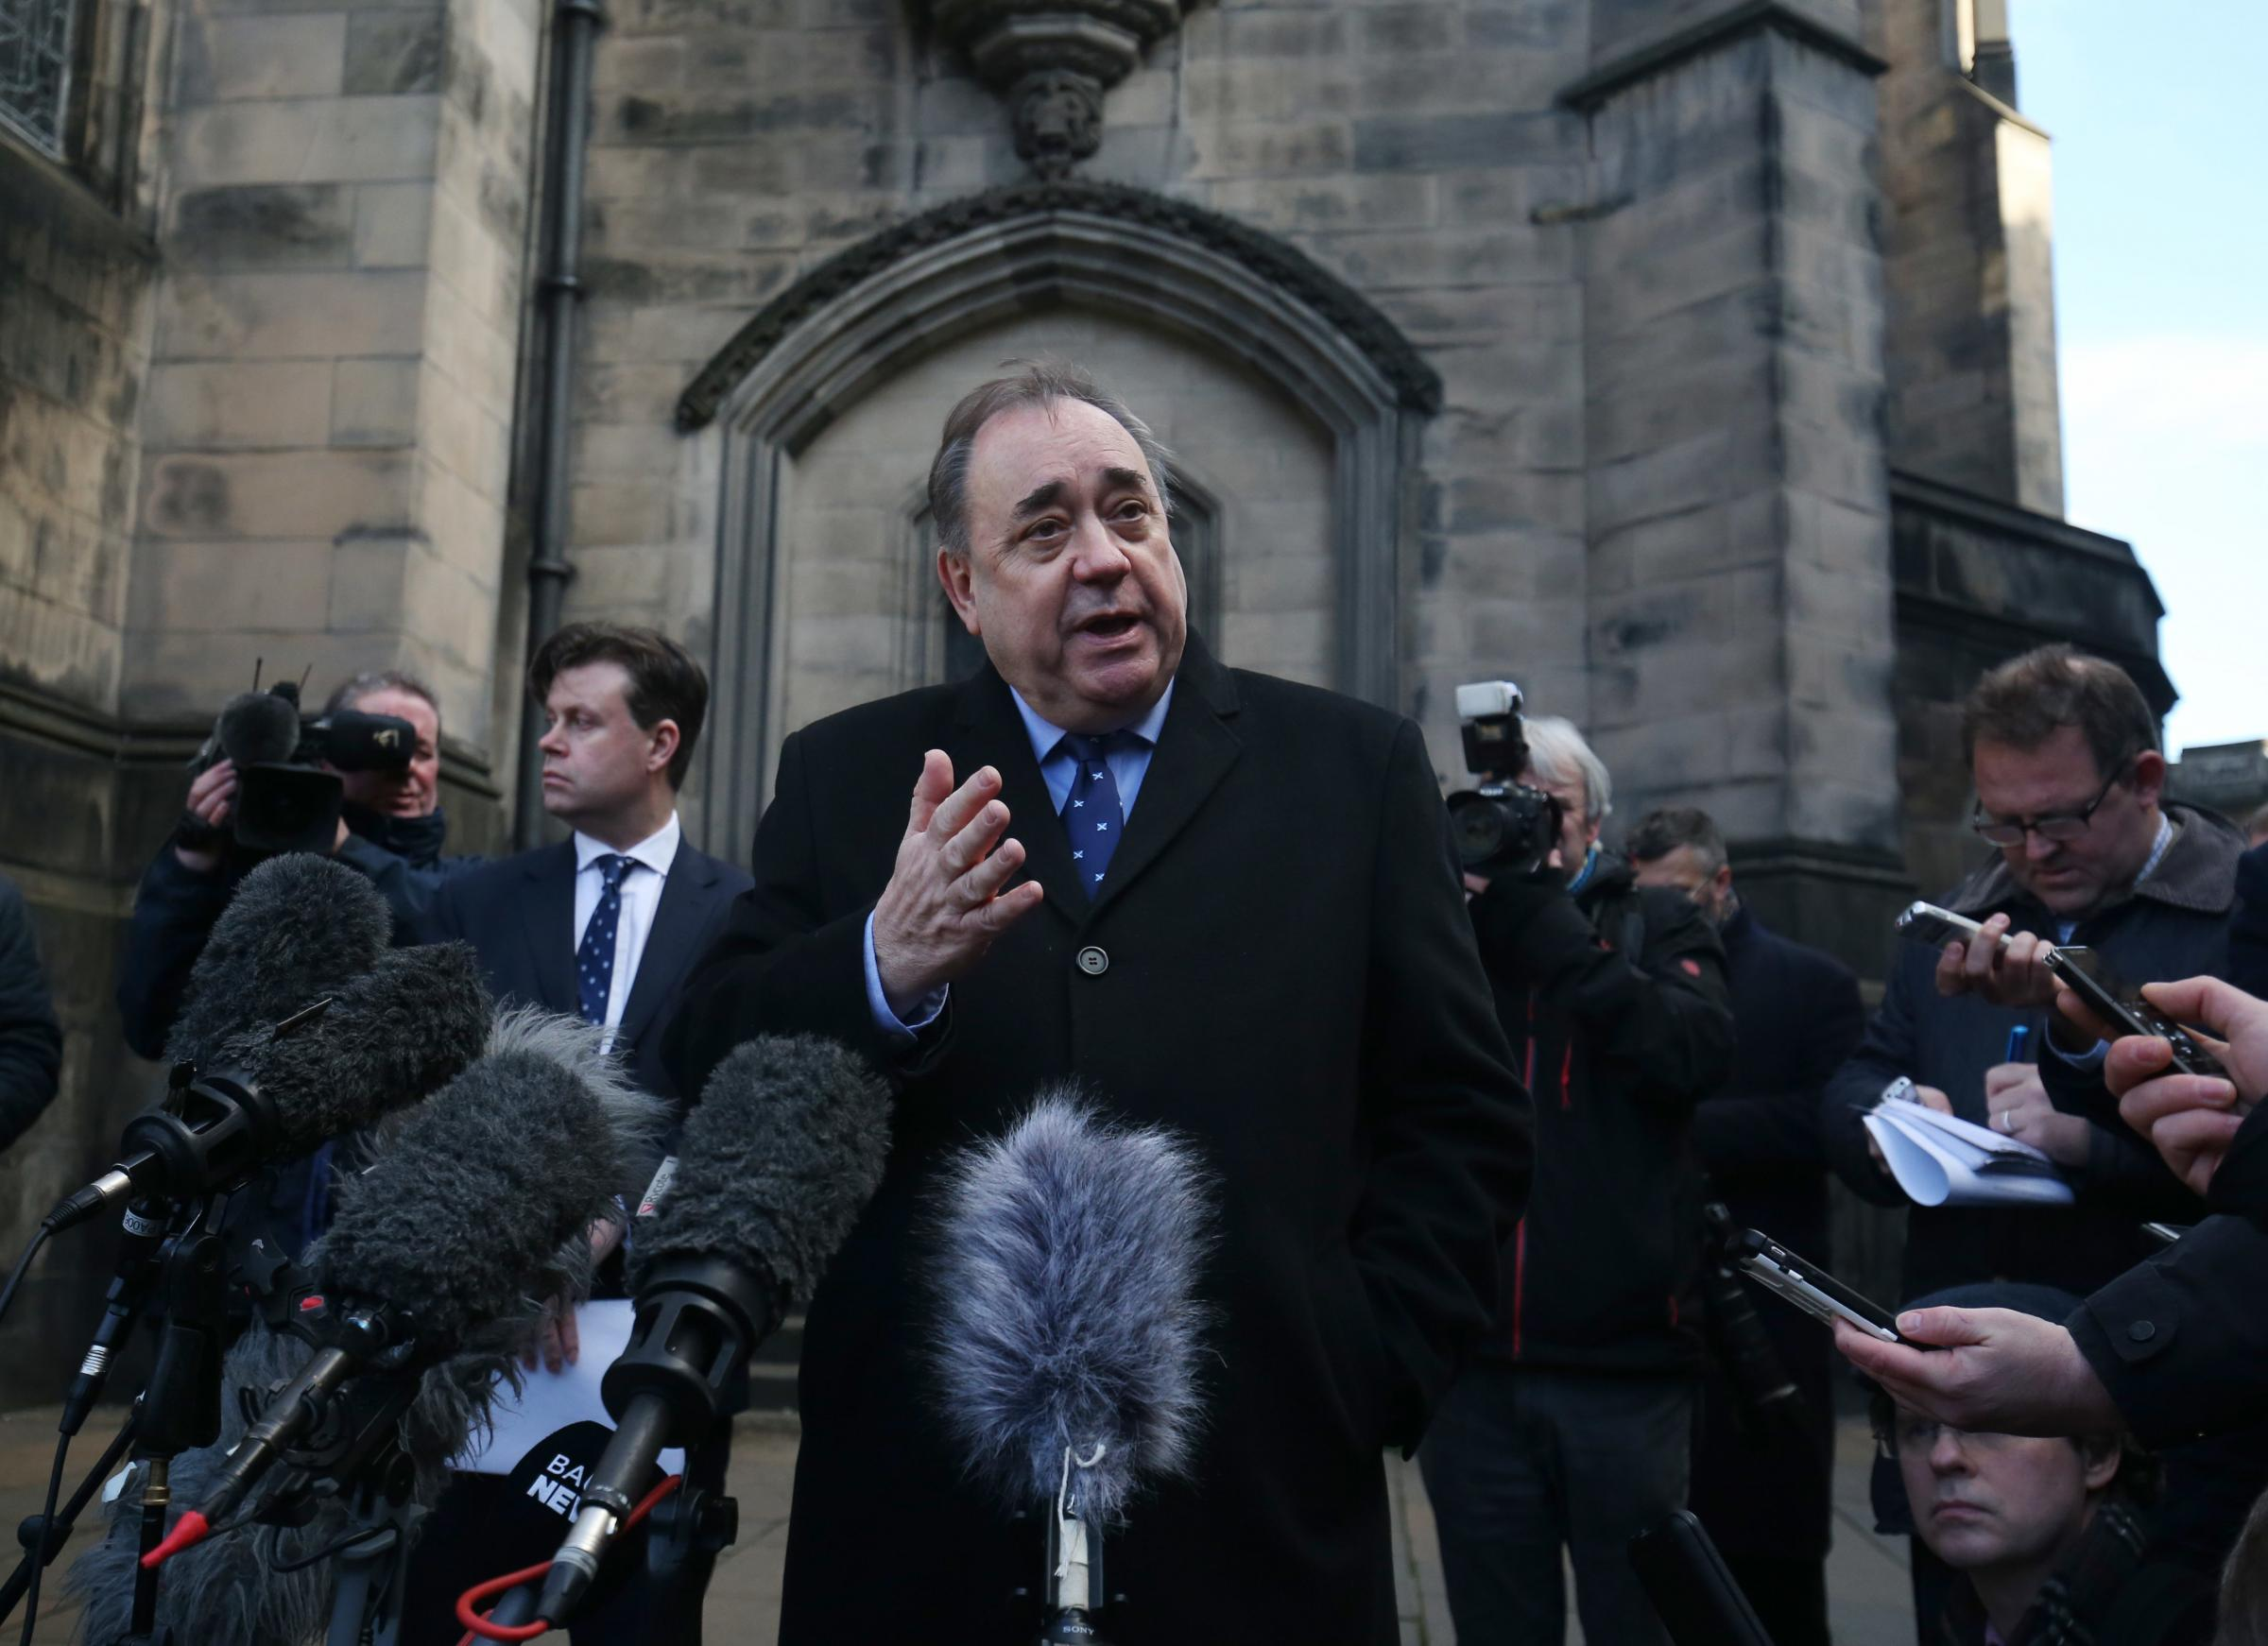 Alex Salmond speaking outside the Court of Session in Edinburgh